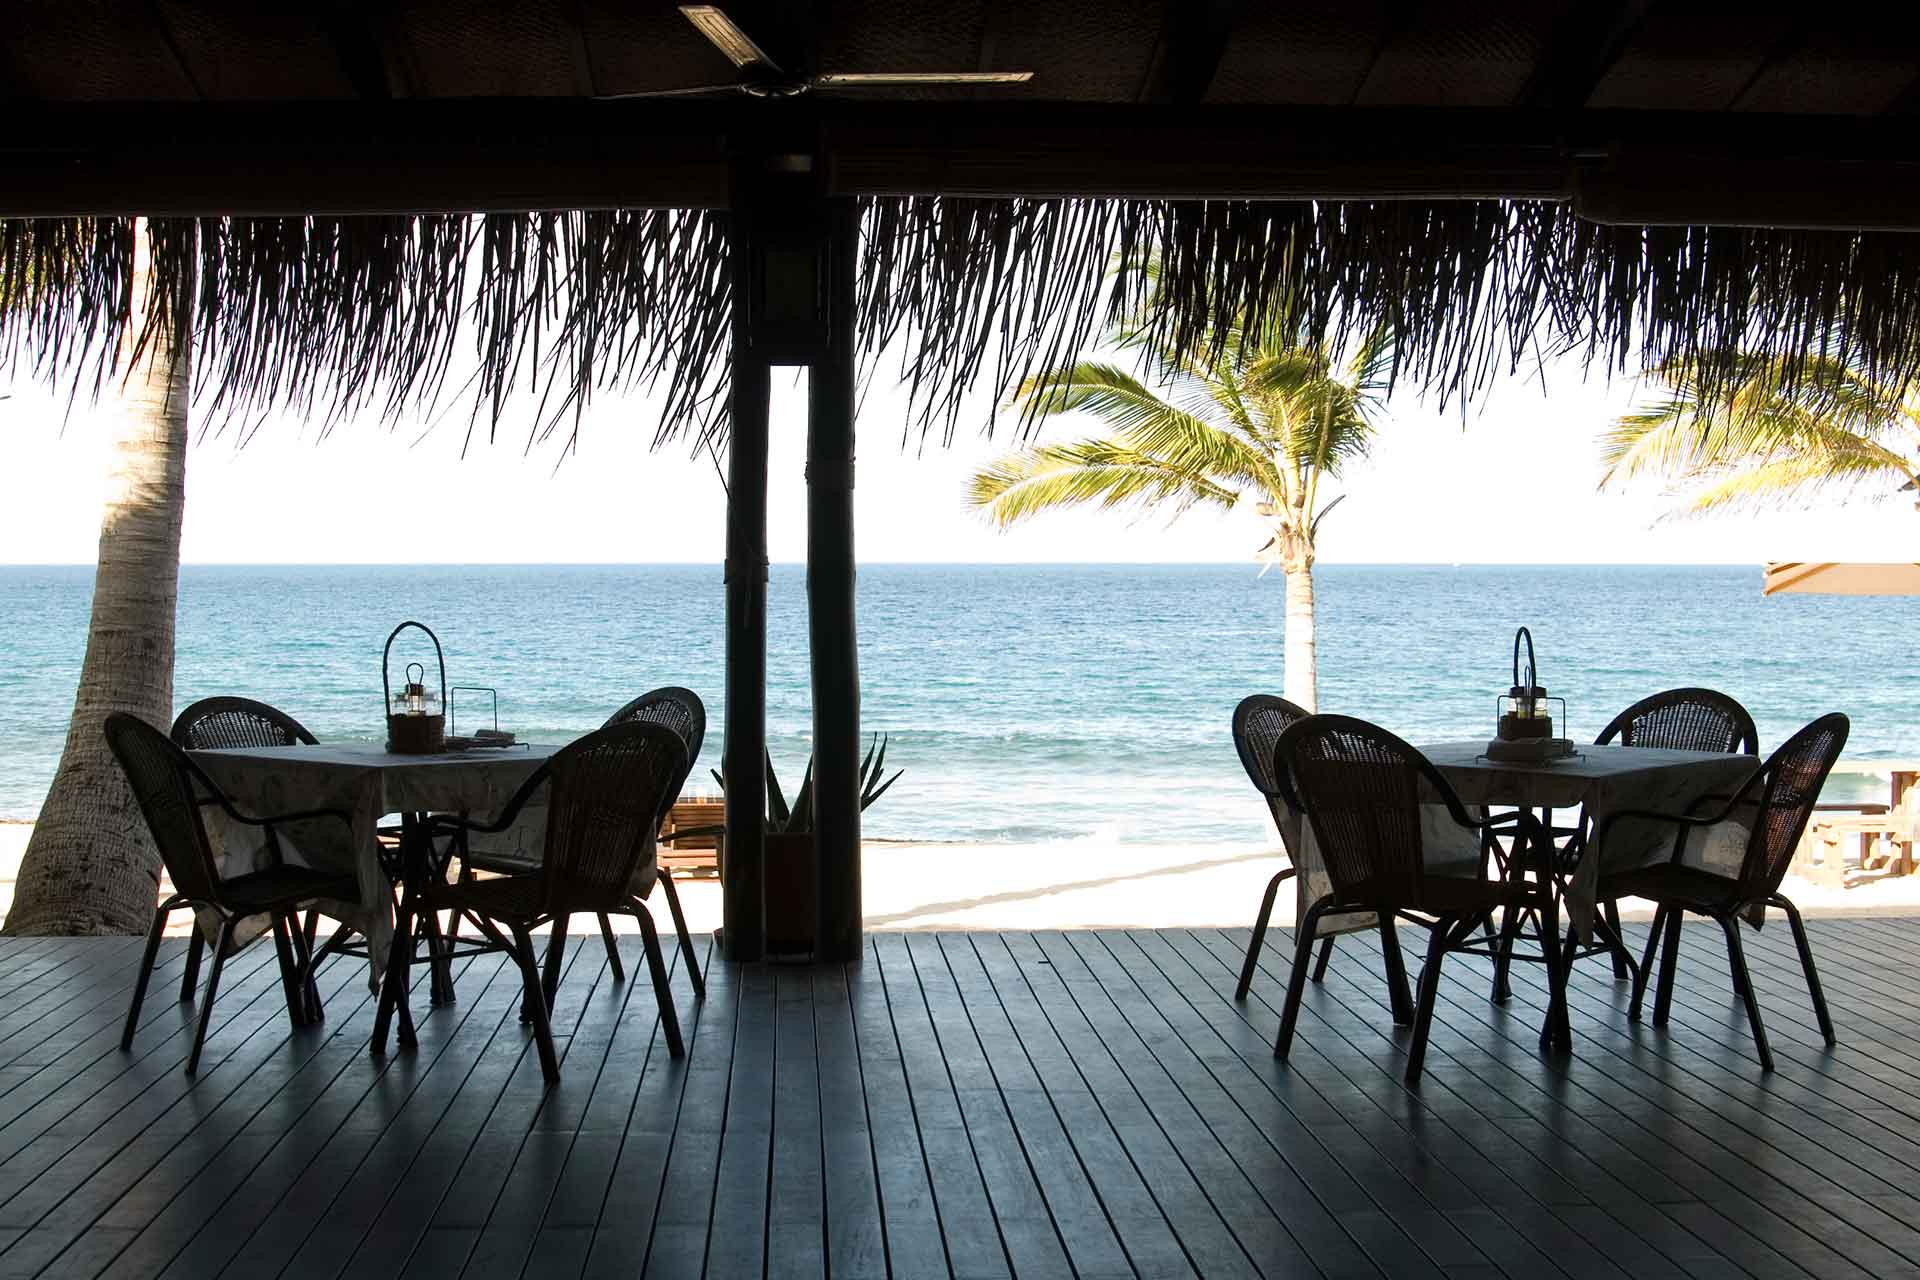 Sea view from a restaurant at AVANI Pemba Beach Hotel